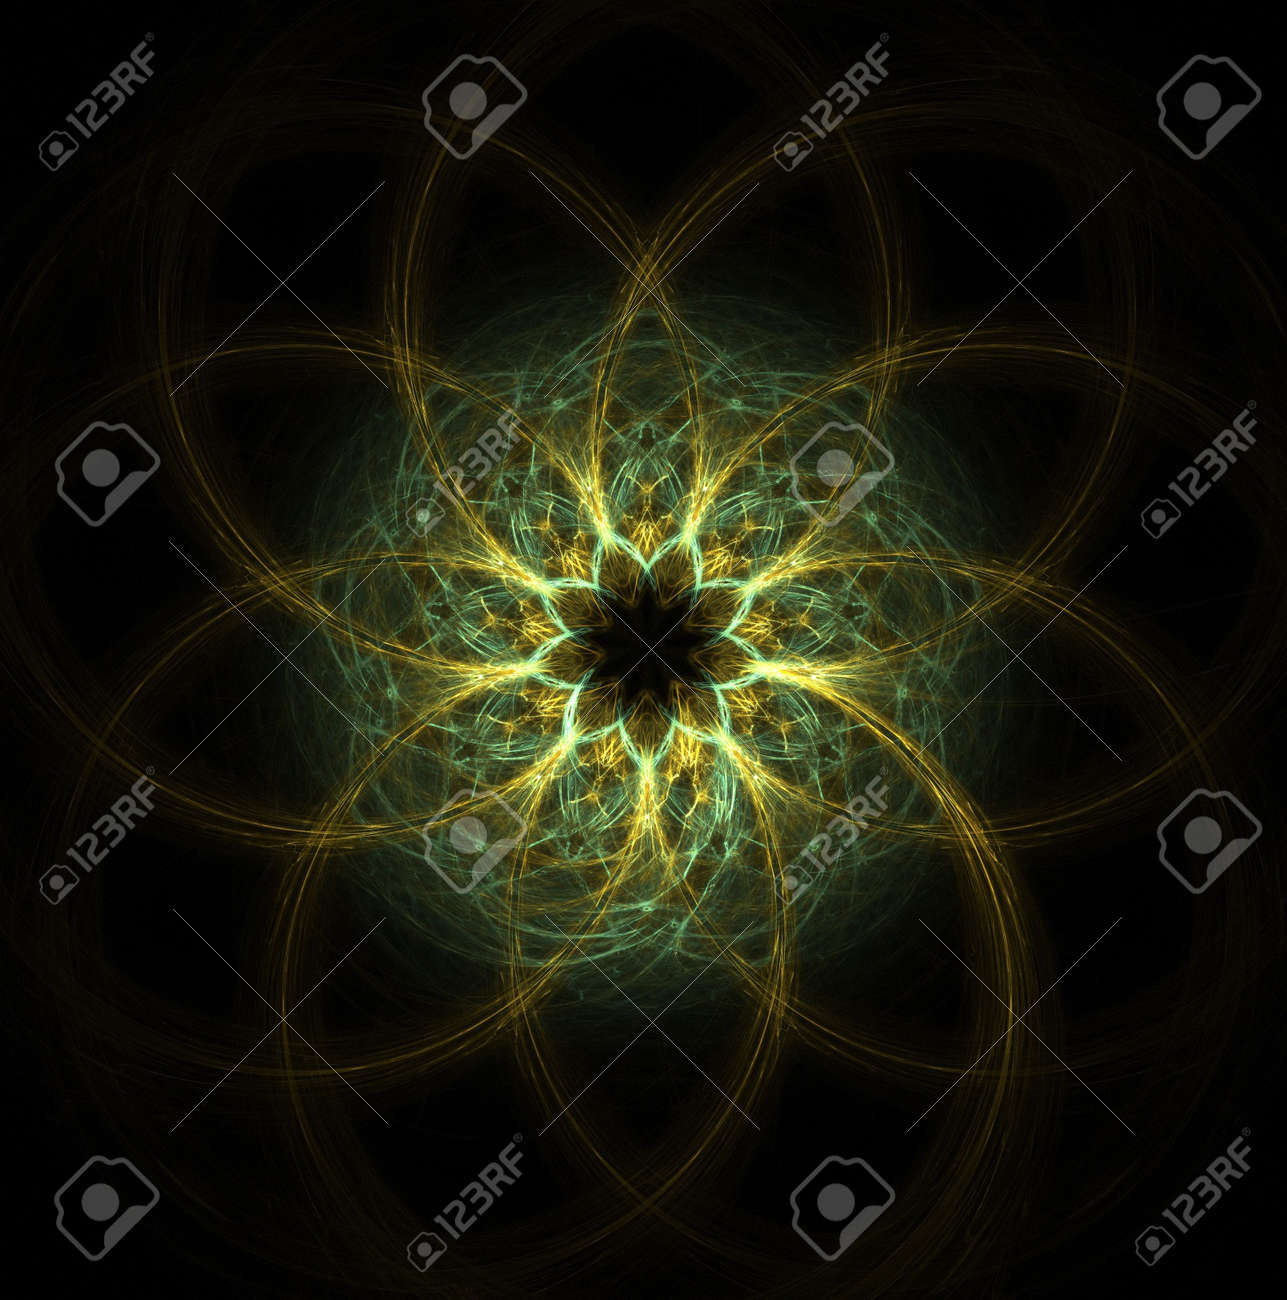 high resolution flame fractal forming a mandala that resembles an eye or flower Stock Photo - 1319051